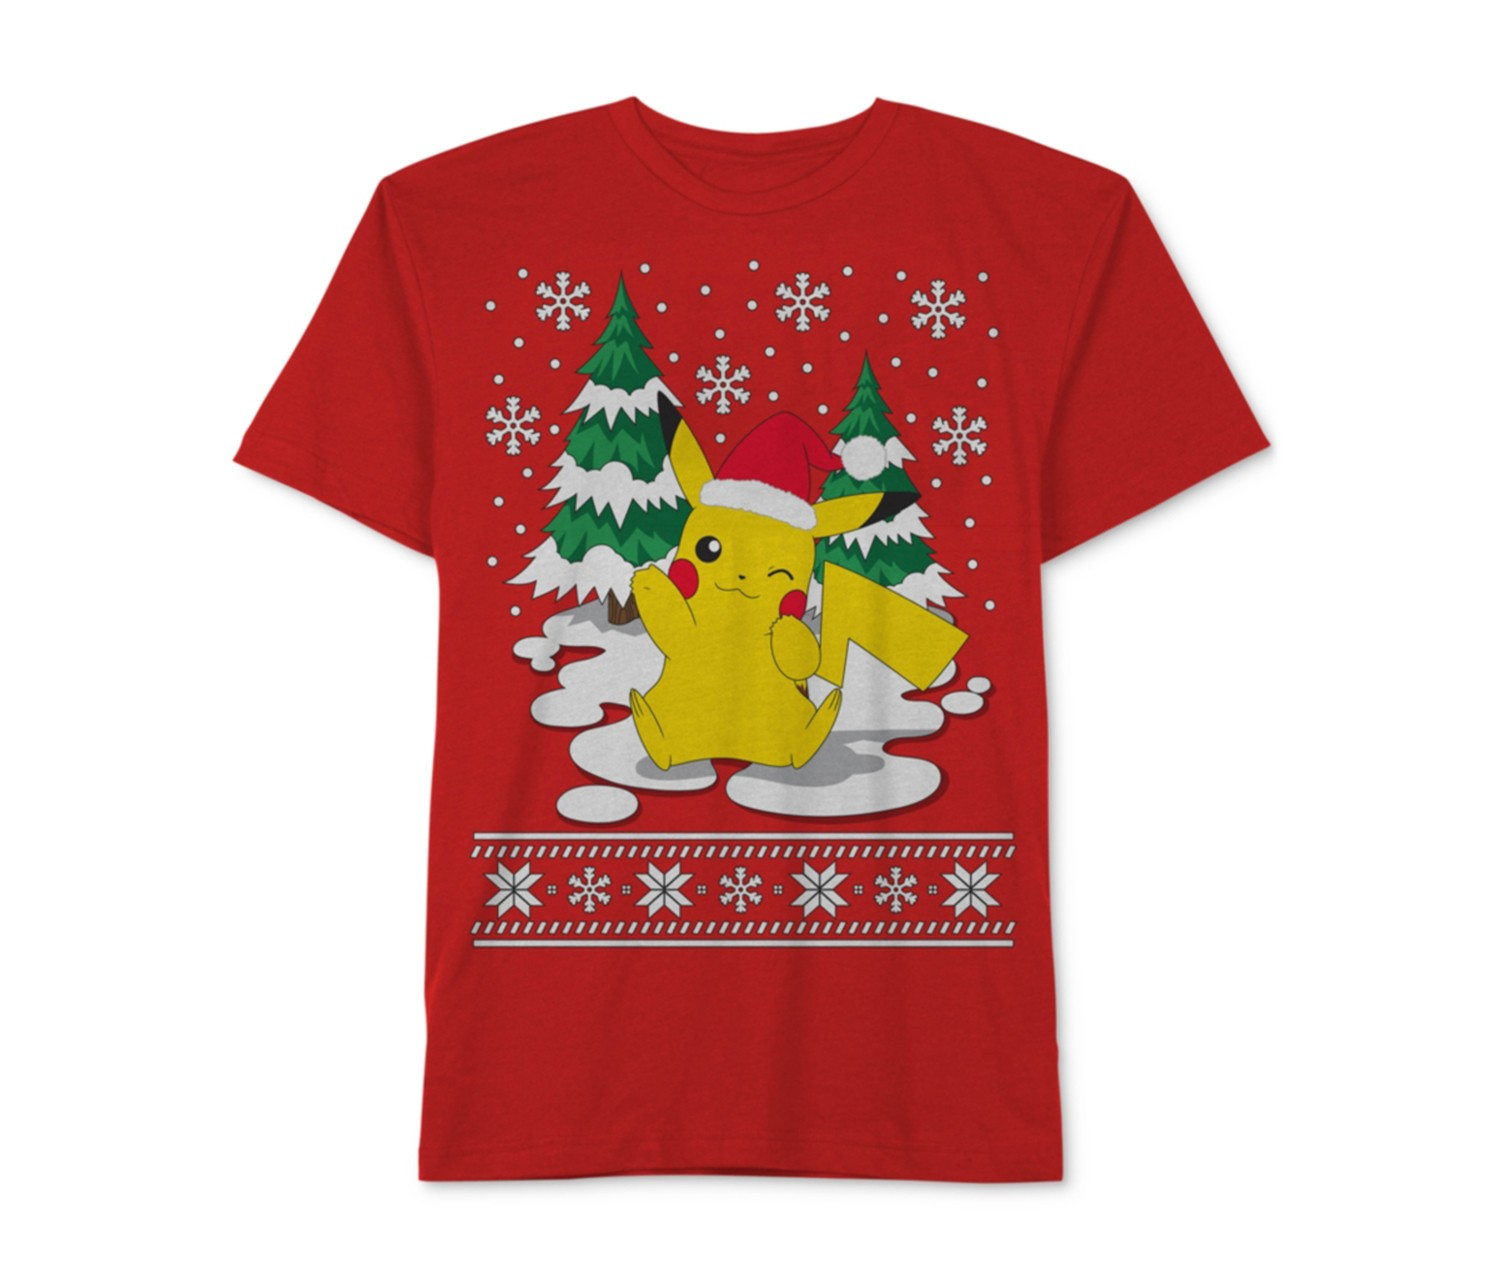 0623c9eba Shop JEM Jem Pokemon Merry Pikachu-Print T-Shirt, Red for Toddlers ...